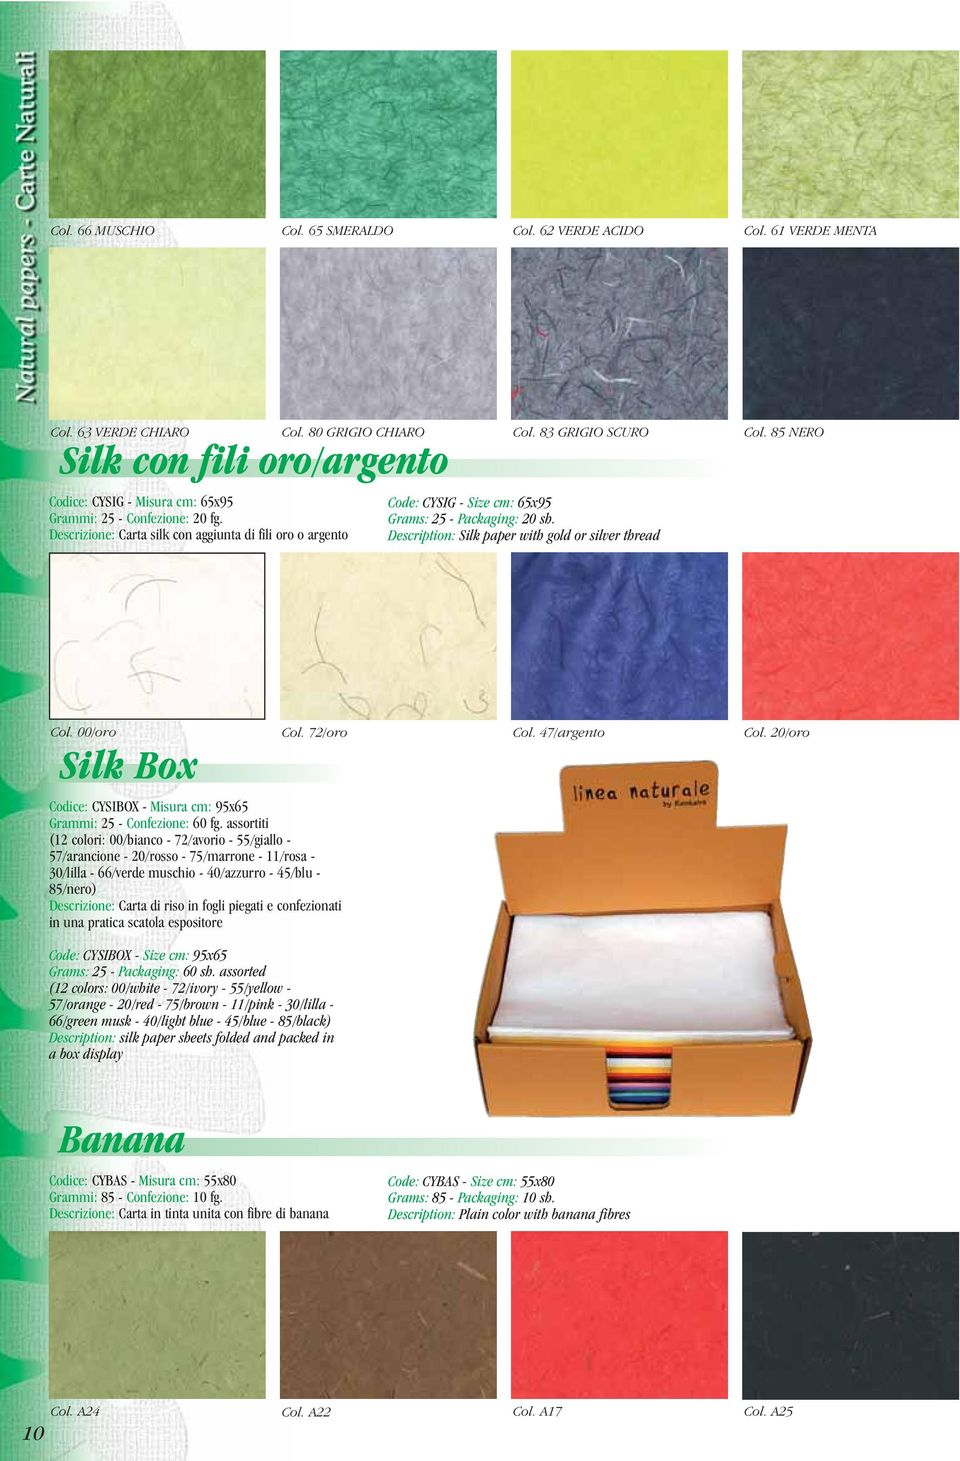 83 GRIGIO SCURO Code: CYSIG - Size cm: 65x95 Grams: 25 - Packaging: 20 sh. Description: Silk paper with gold or silver thread Col. 85 NERO Col. 00/oro Col. 72/oro Col. 47/argento Col.